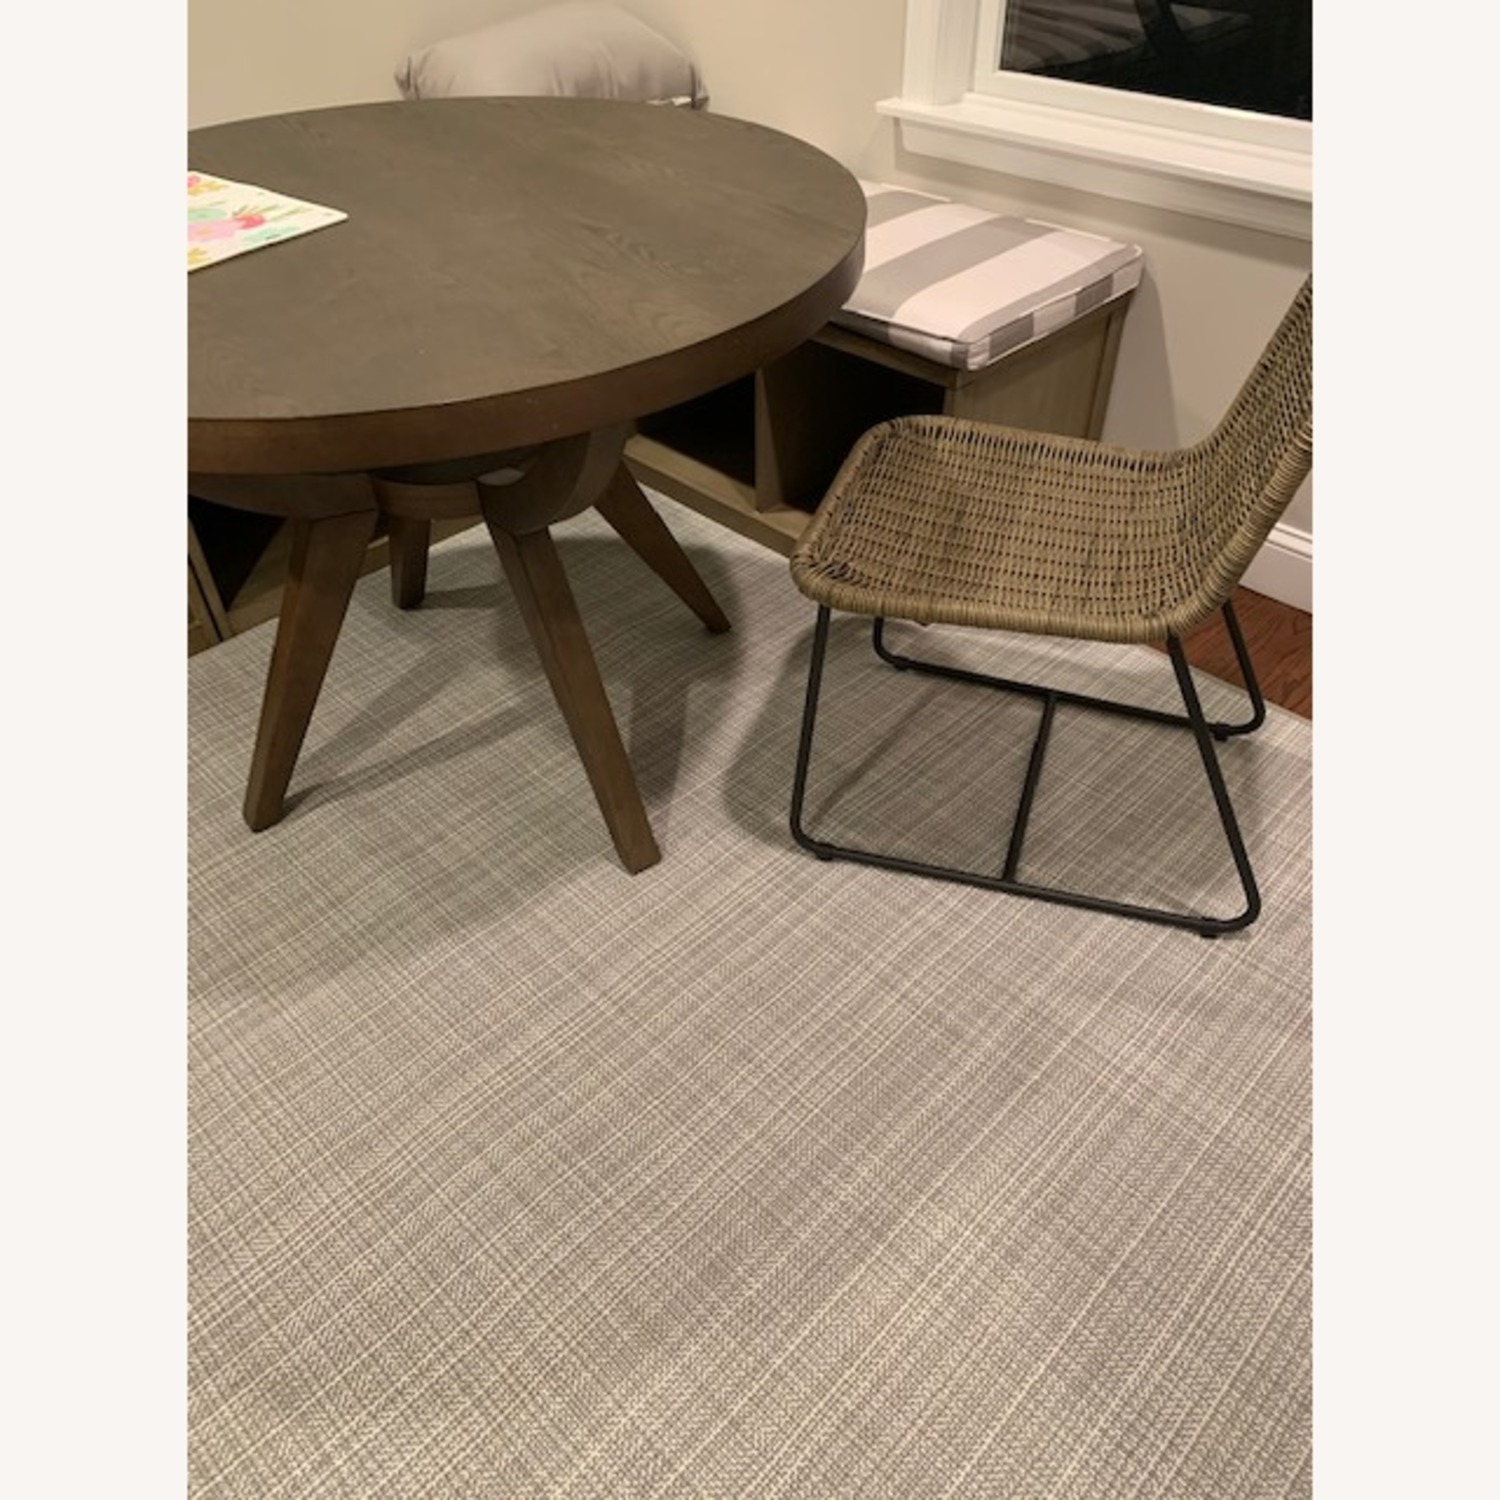 Pottery Barn Woven Grey Chairs - image-2